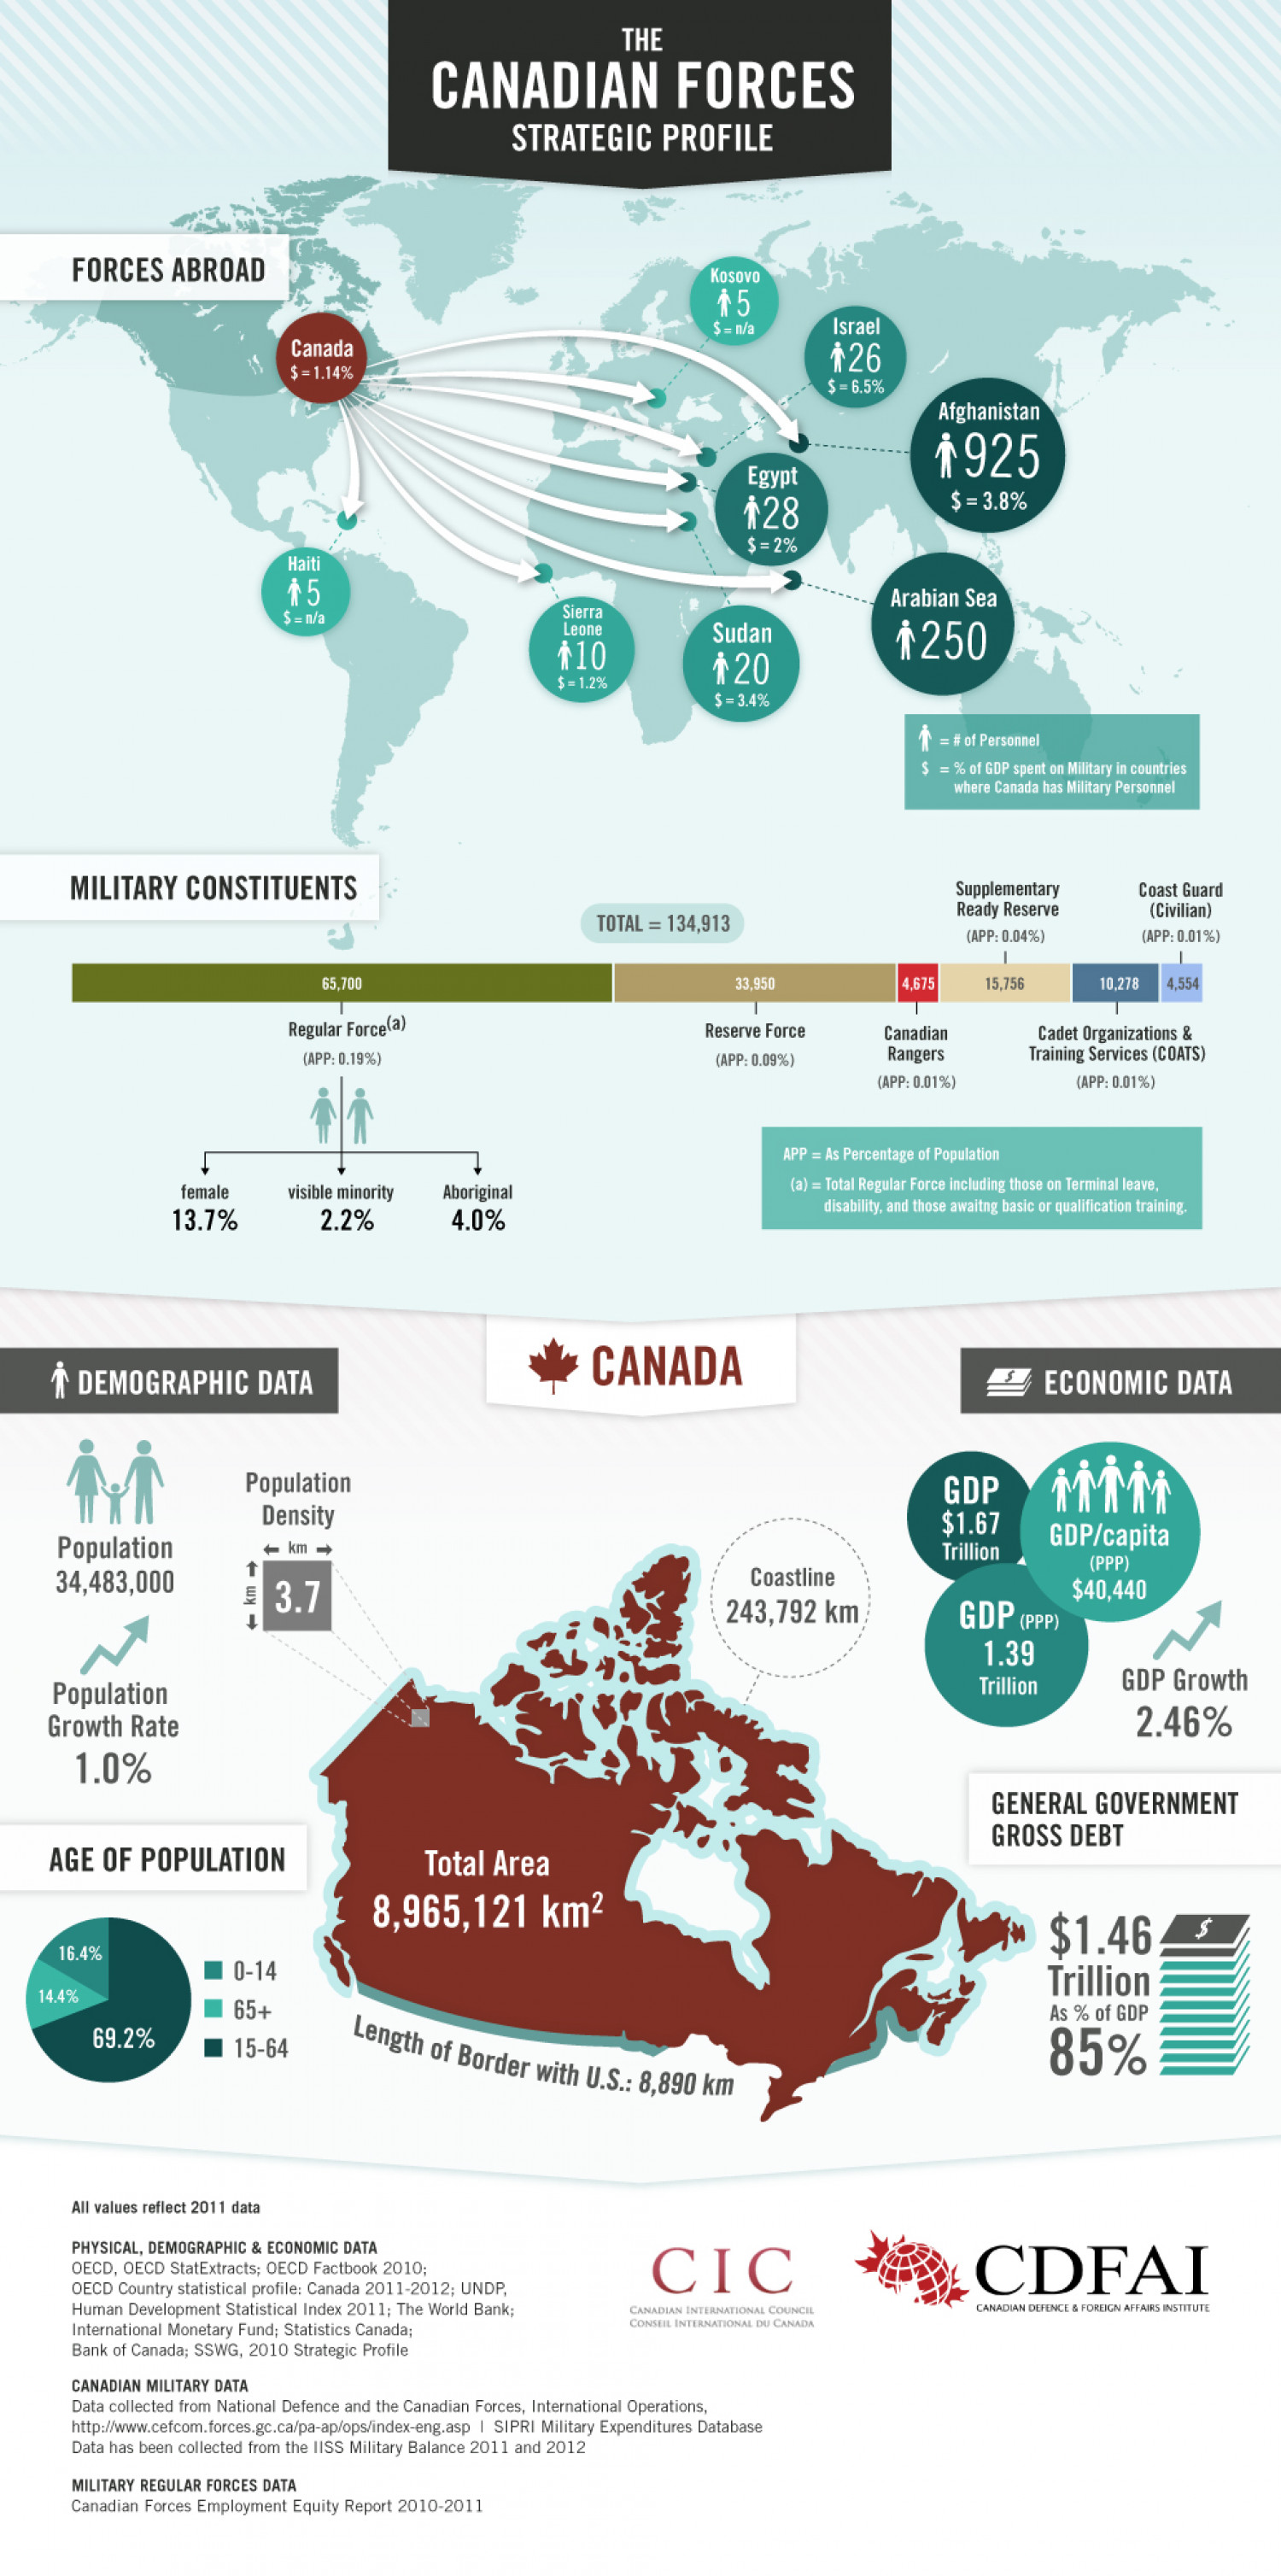 The Canadian Forces Strategic Profile Infographic